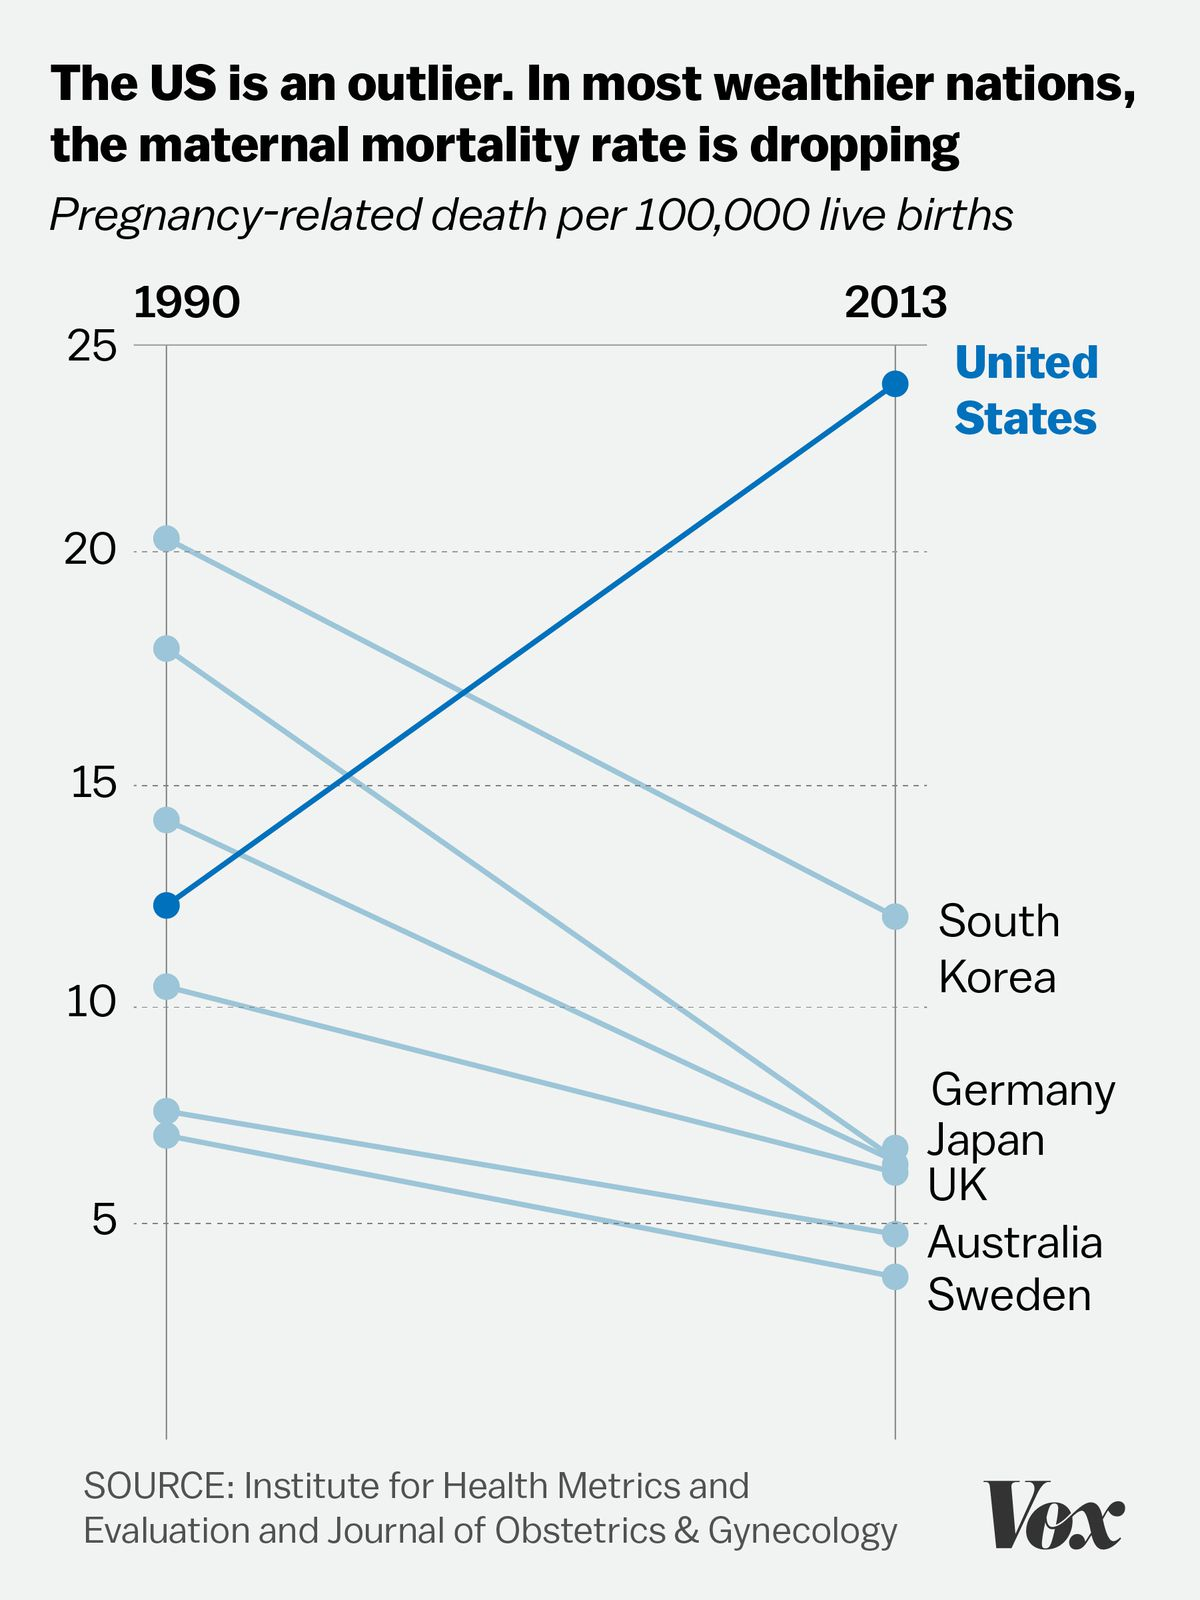 California decided it was tired of women bleeding to death in part of americas increase has to do with changes in how maternal deaths are codified on death certificates in the 1980s health officials realized that 1betcityfo Gallery